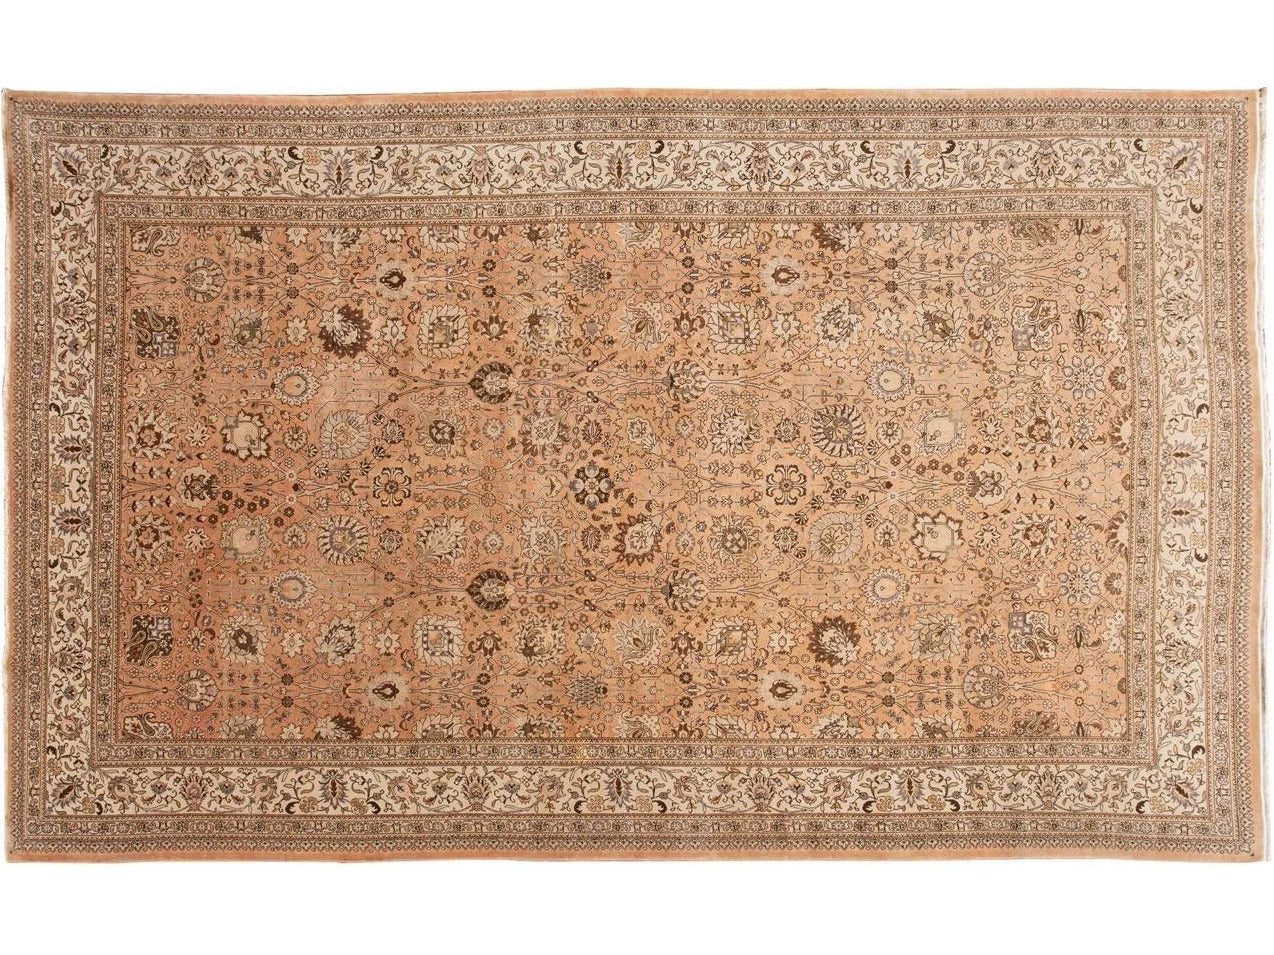 Early 20th Century Antique Tabriz Wool Rug 11 X 18